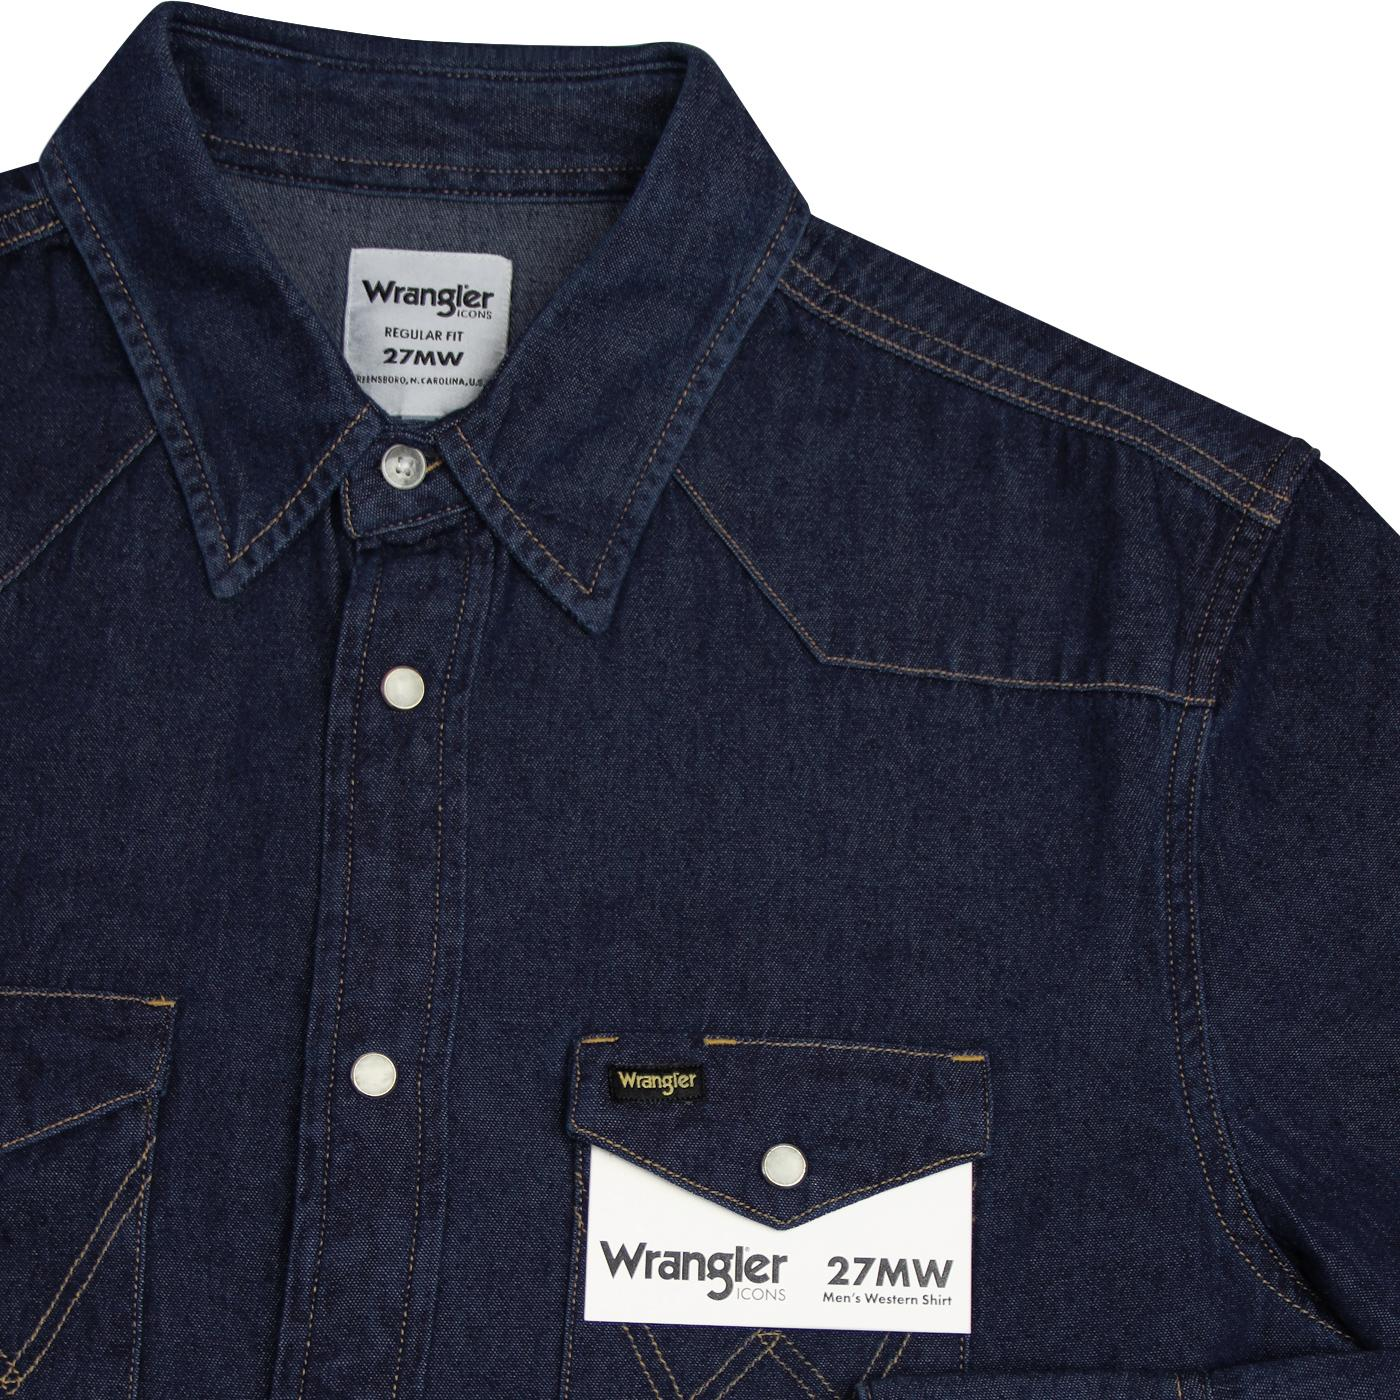 9522aa98d6 WRANGLER 27MW Retro Men's Western Shirt in Indigo Denim